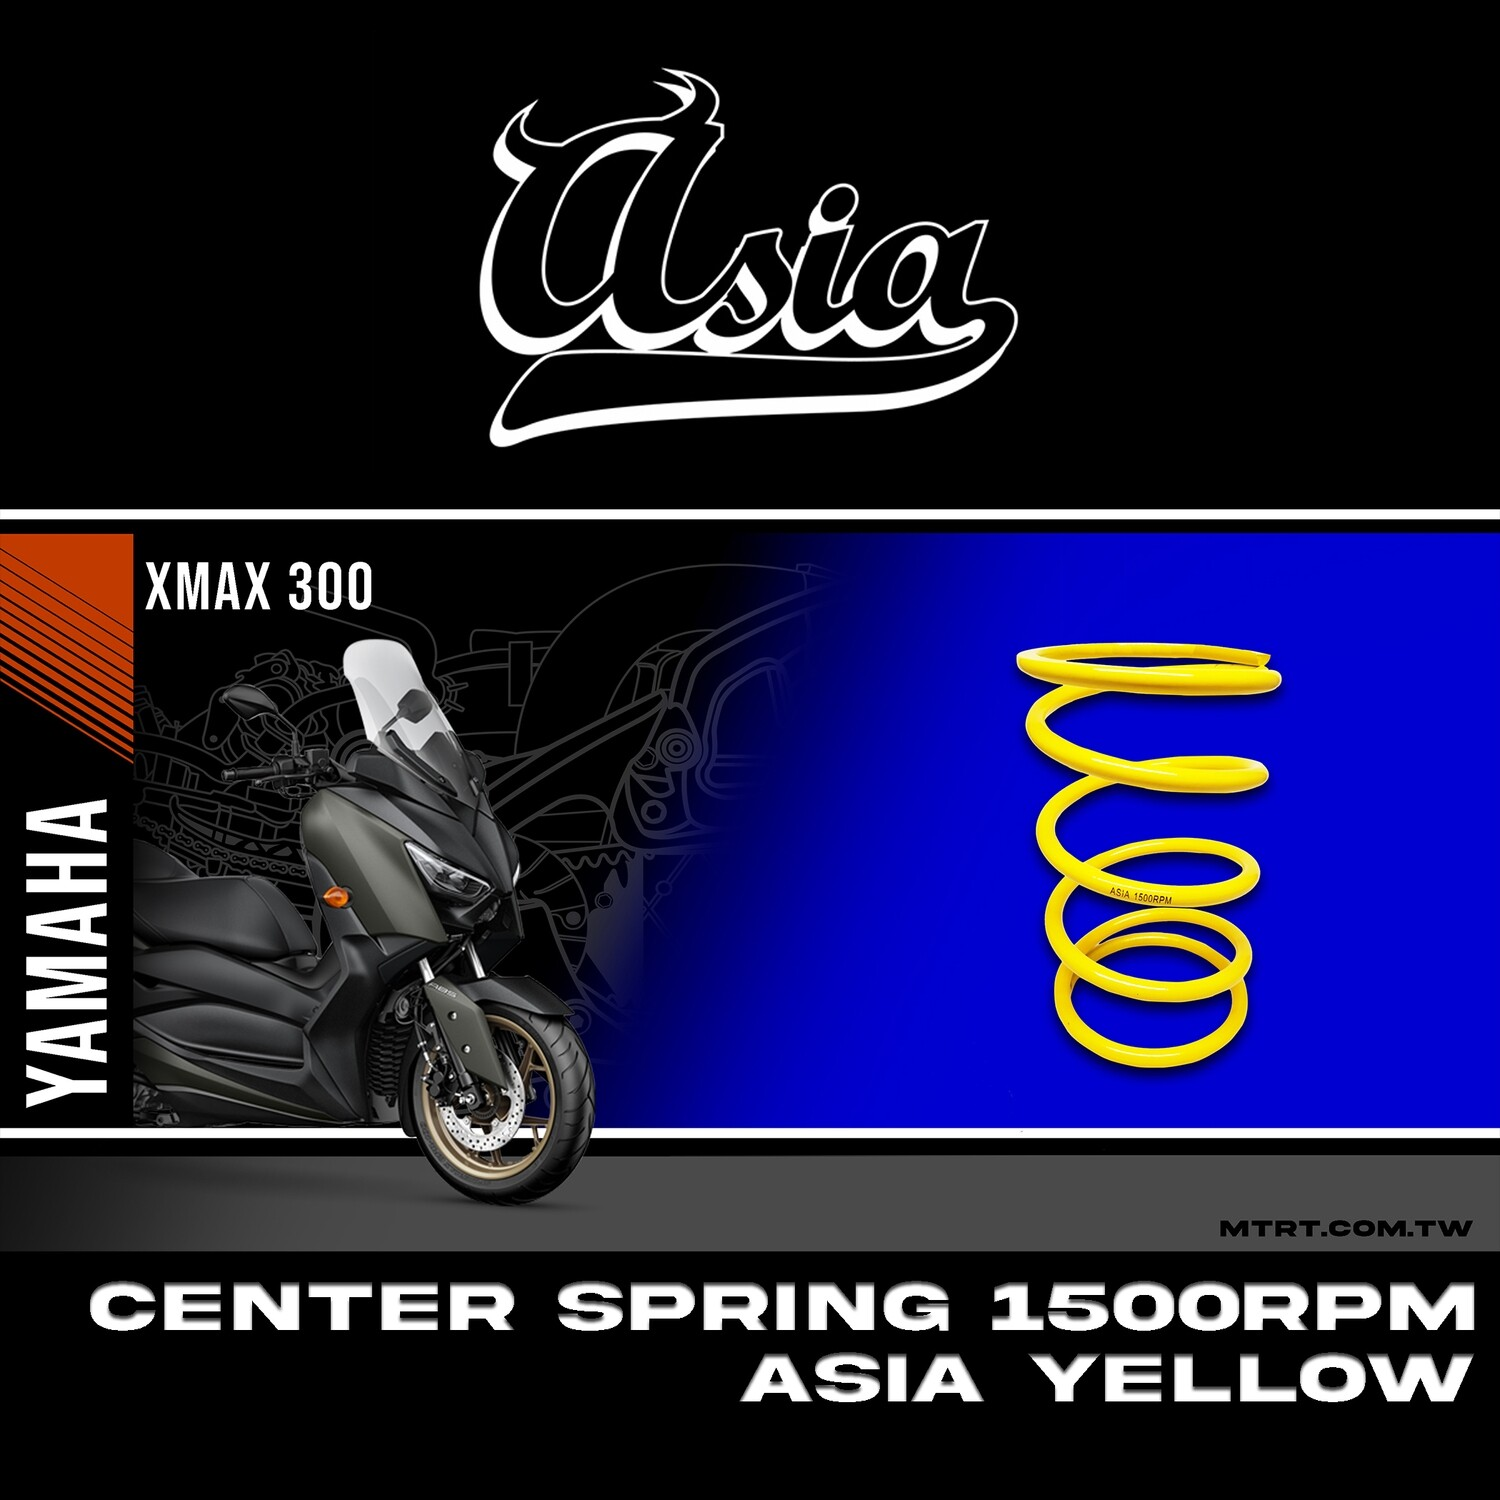 CENTER SPRING XMAX300 1500RPM  ASIA YELLOW